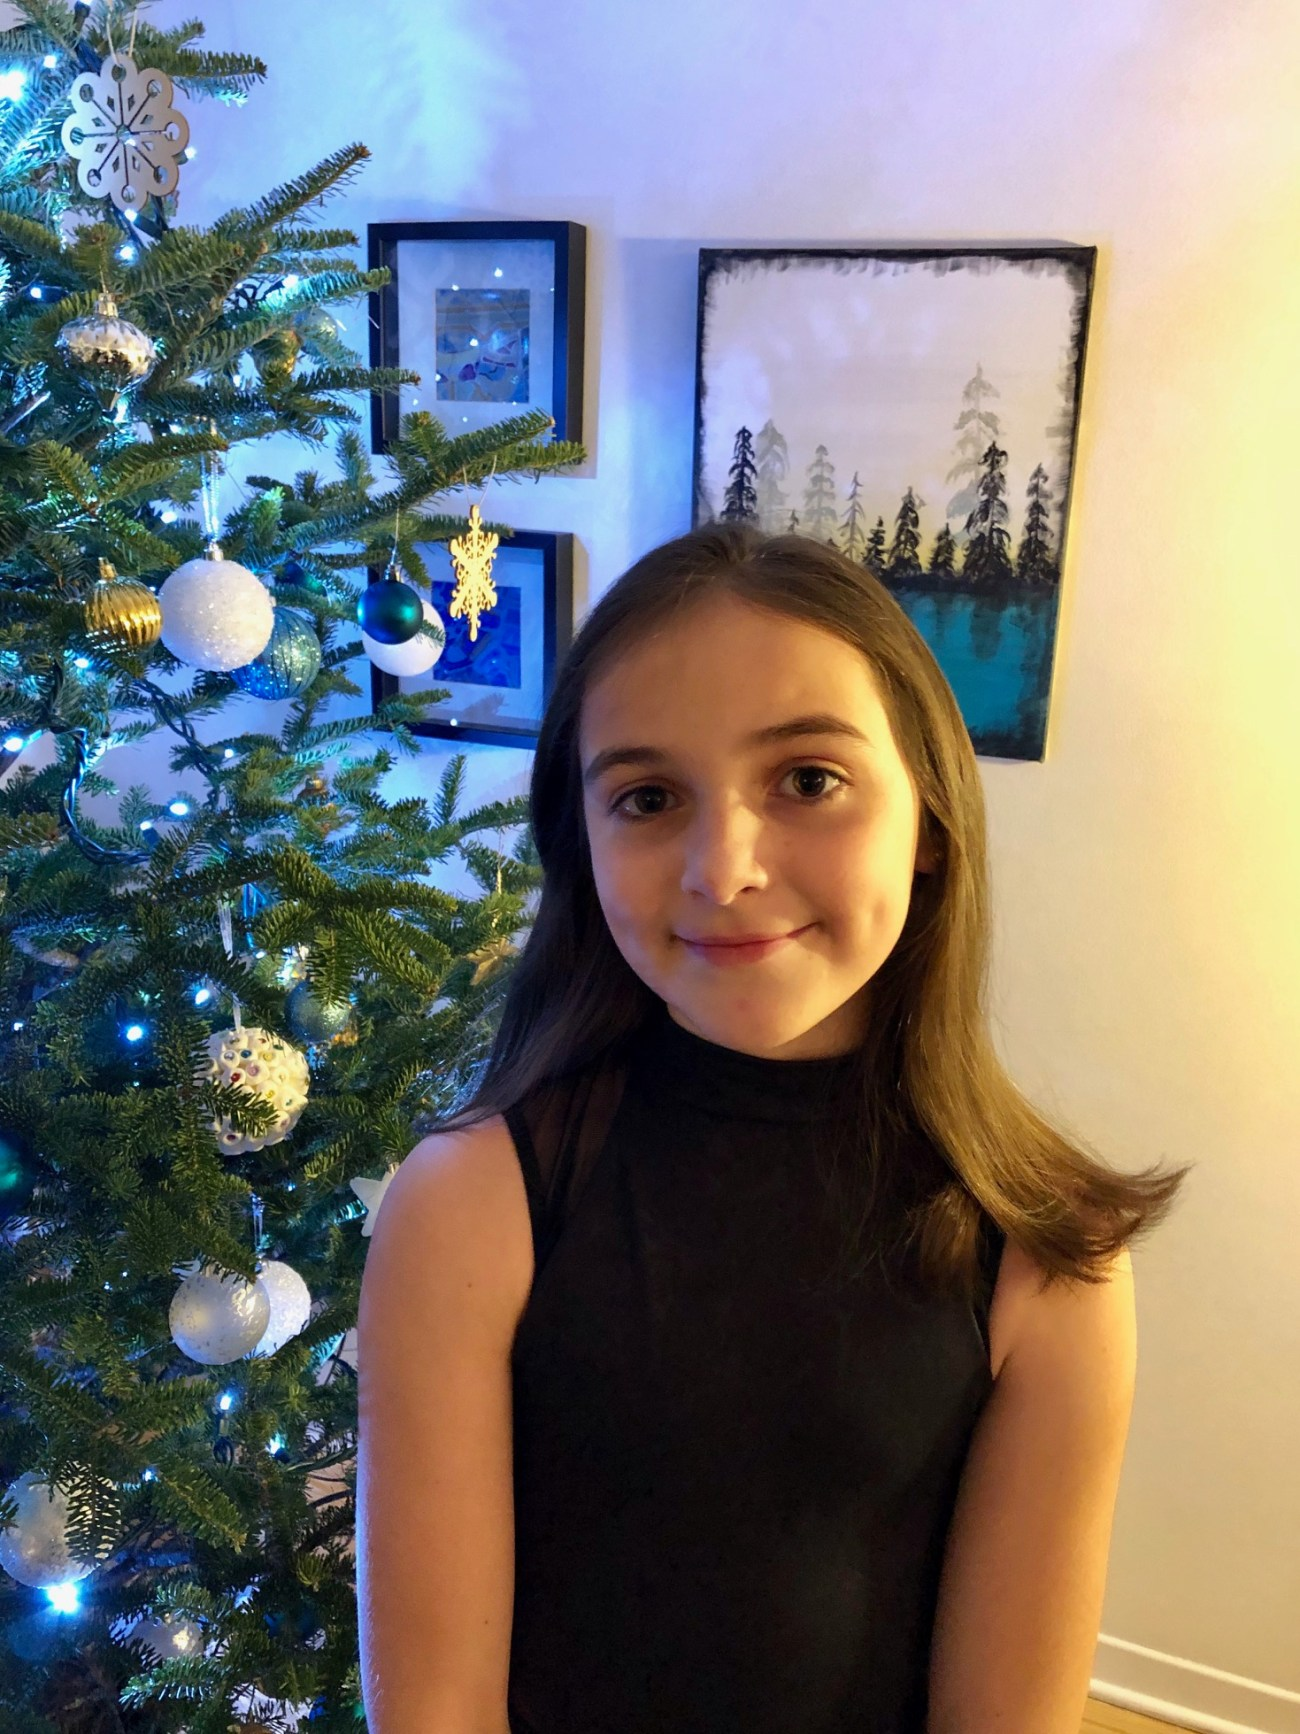 10-year-old Maisie Burchett, who will play one of the chipmunks in this year's performance of Ballet Jörgen' The Nutcracker: A Canadian Tradition at the Shenkman Arts Centre, poses in front of her family's christmas tree.